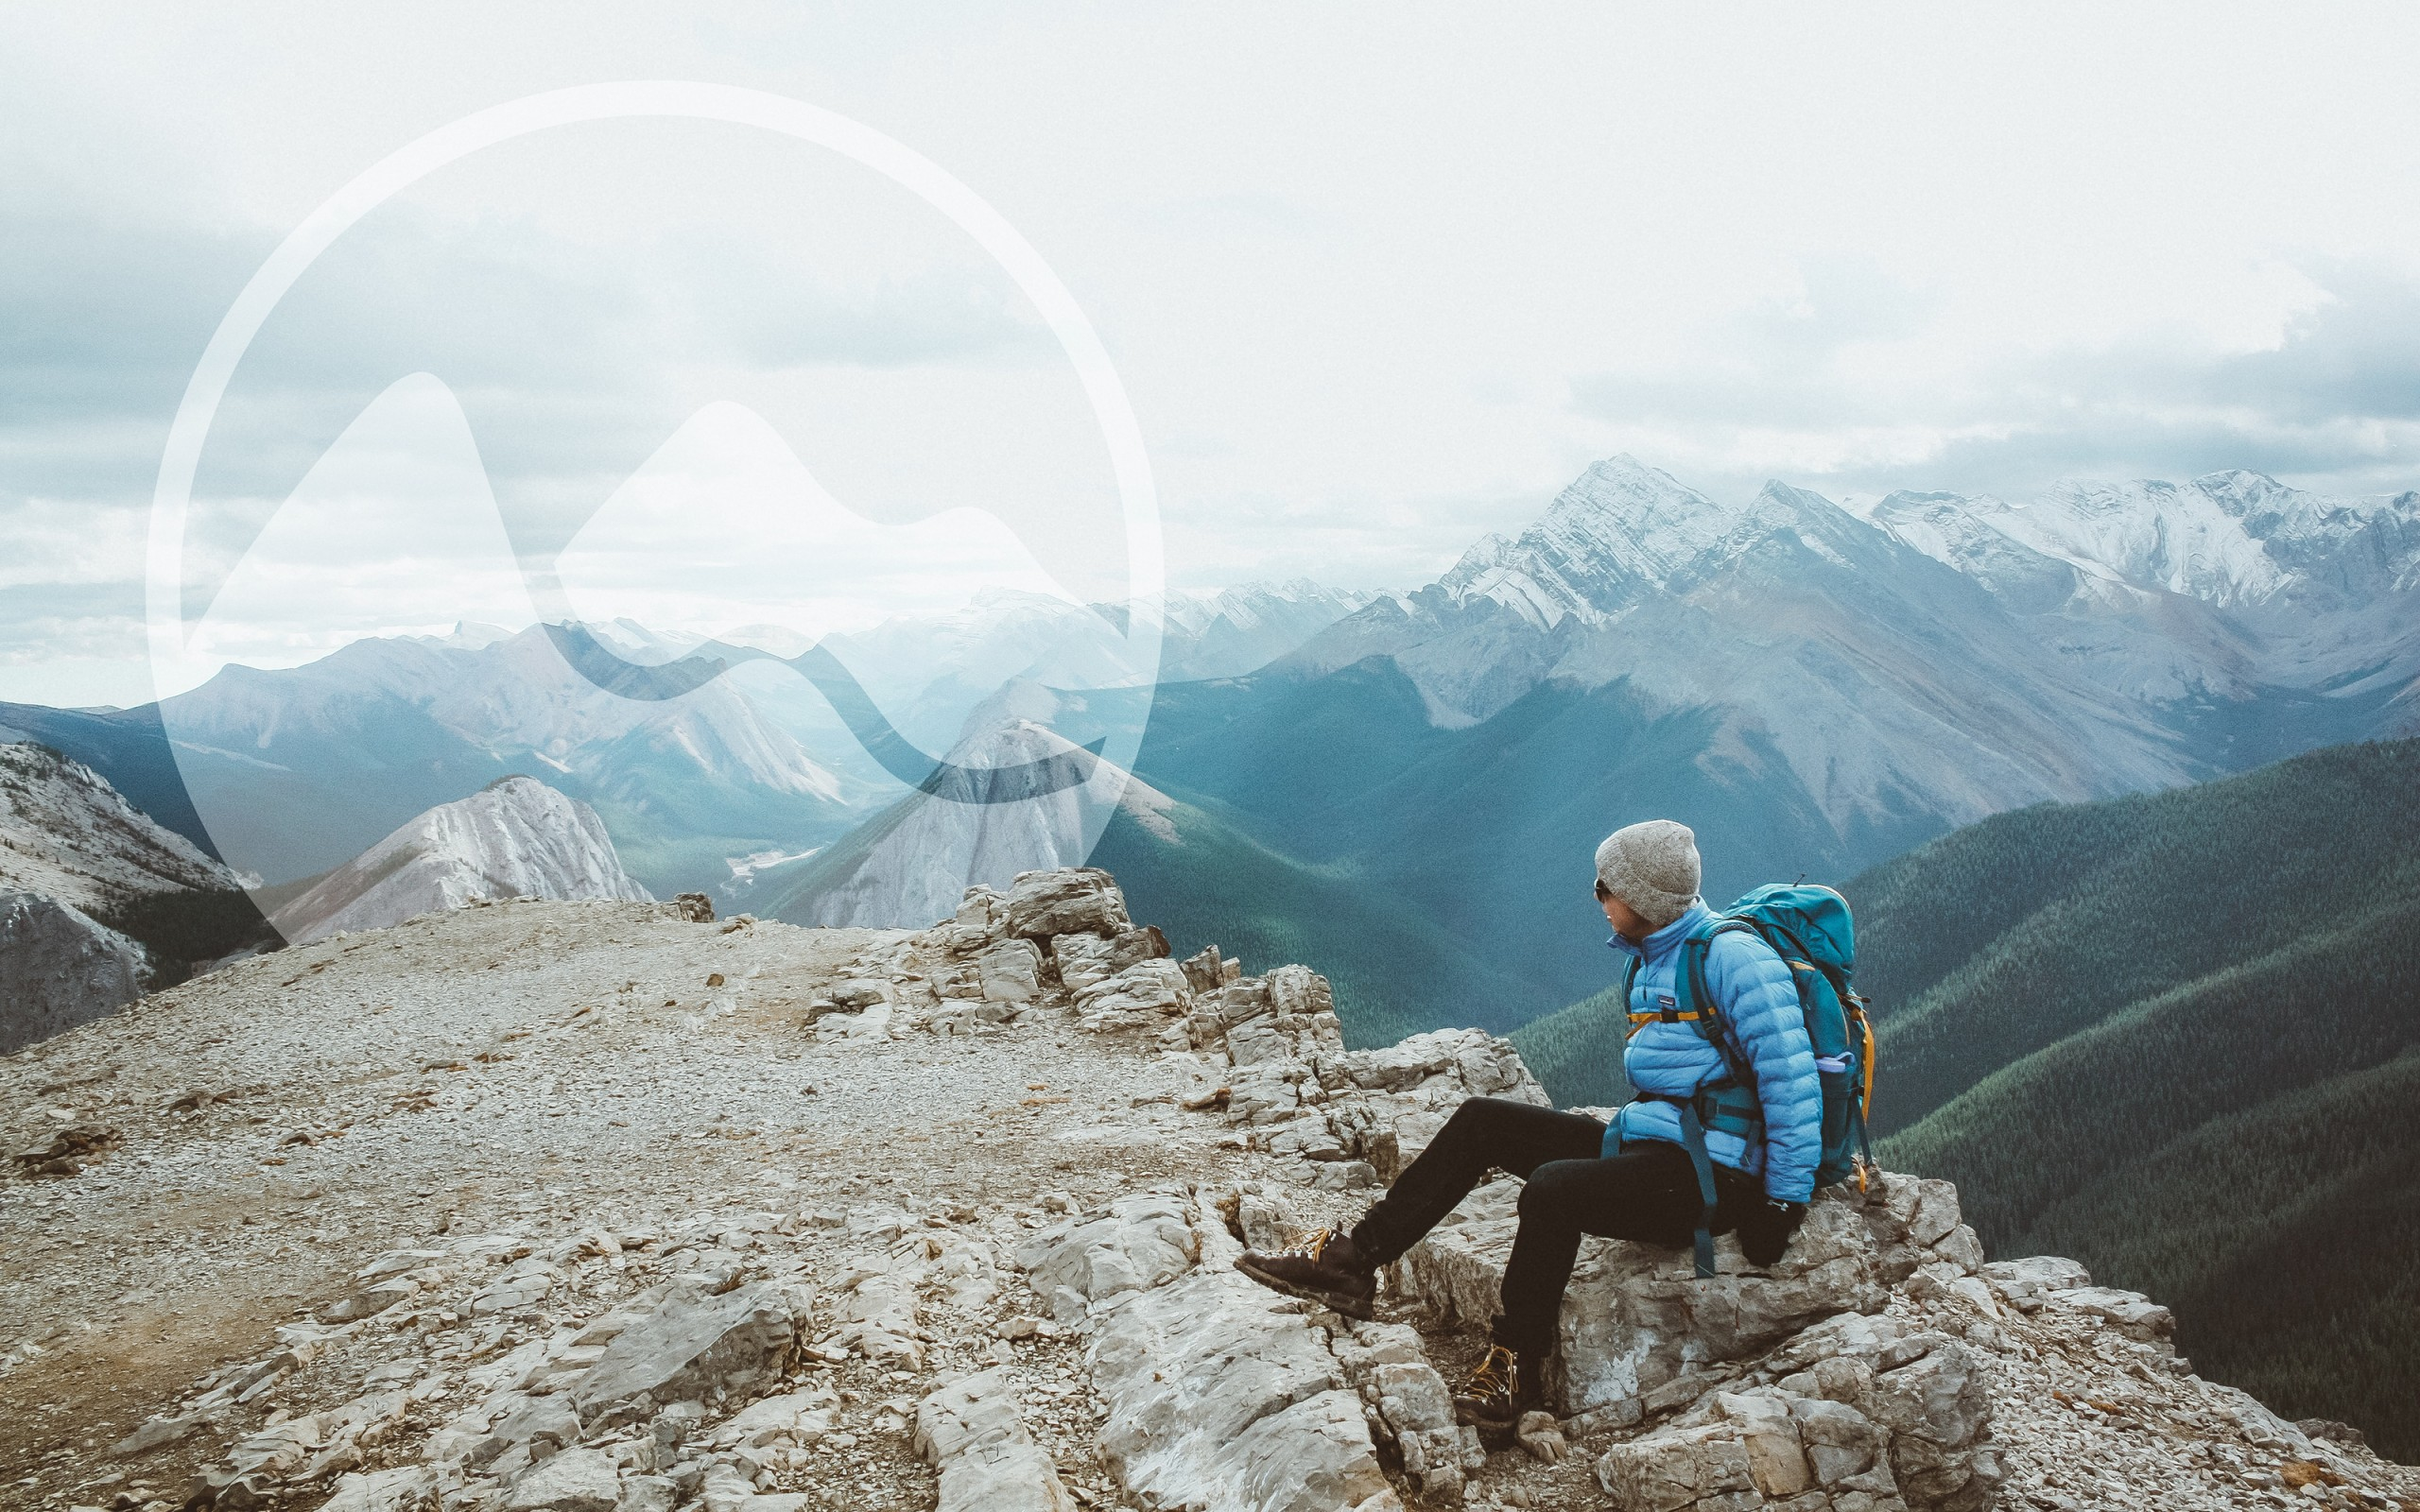 Hitchweb logo as a watermark on a photo of a hiker on a mountain.